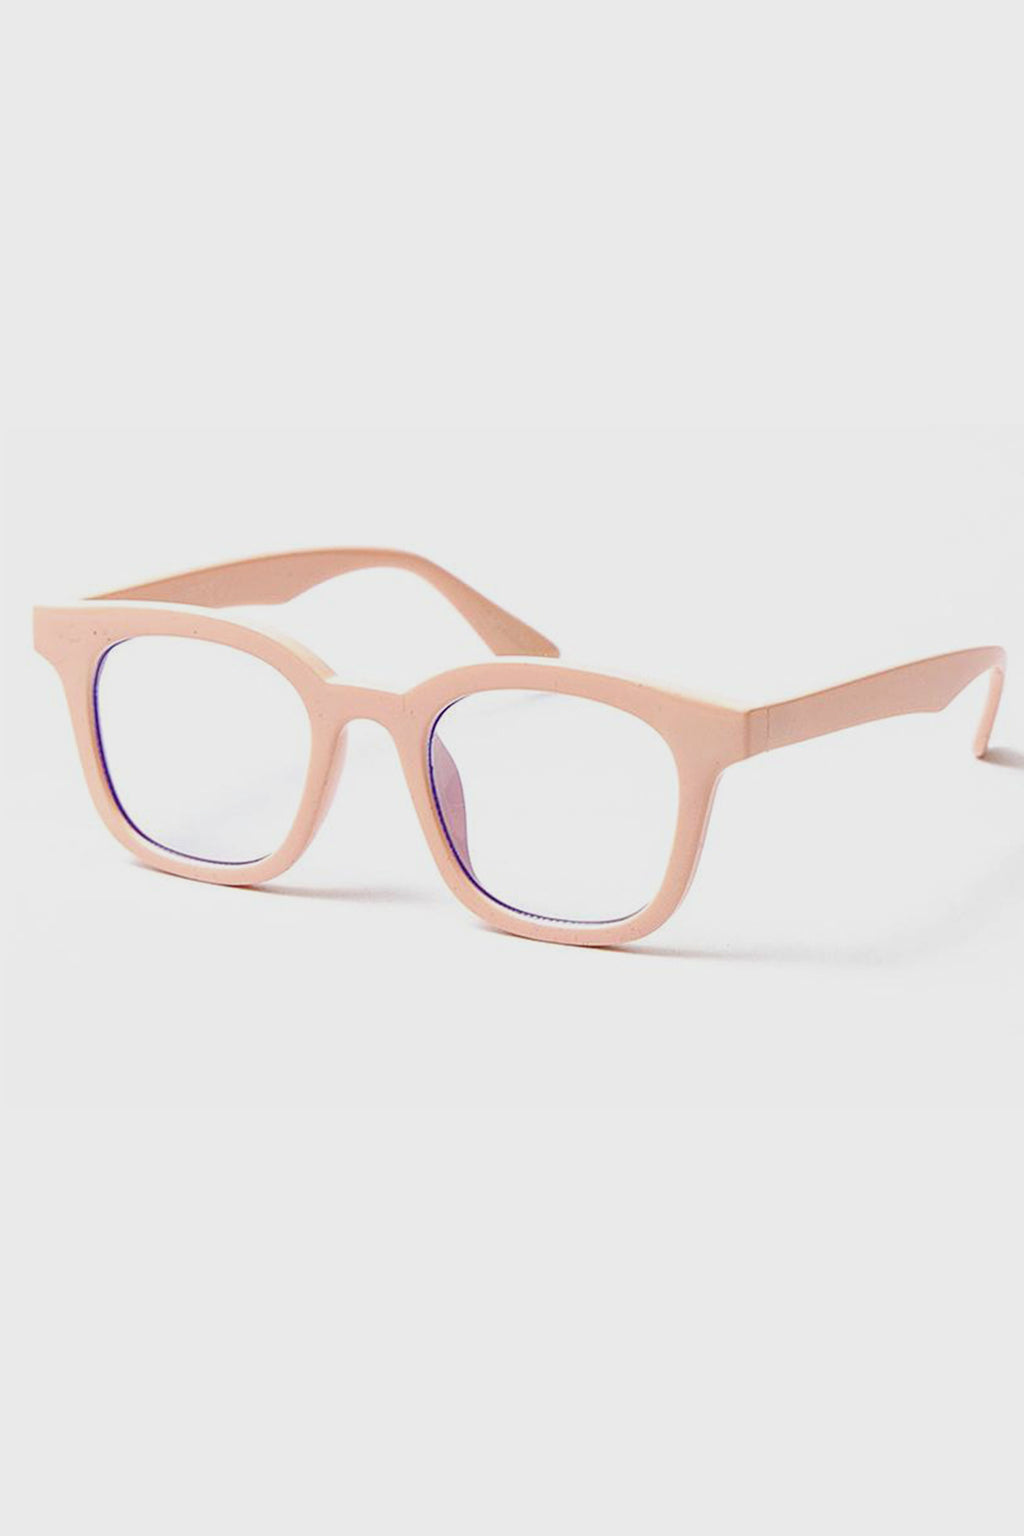 Womens Square Frame With Blue Light Lens (Bsr1132)-GLASSES-BaySky